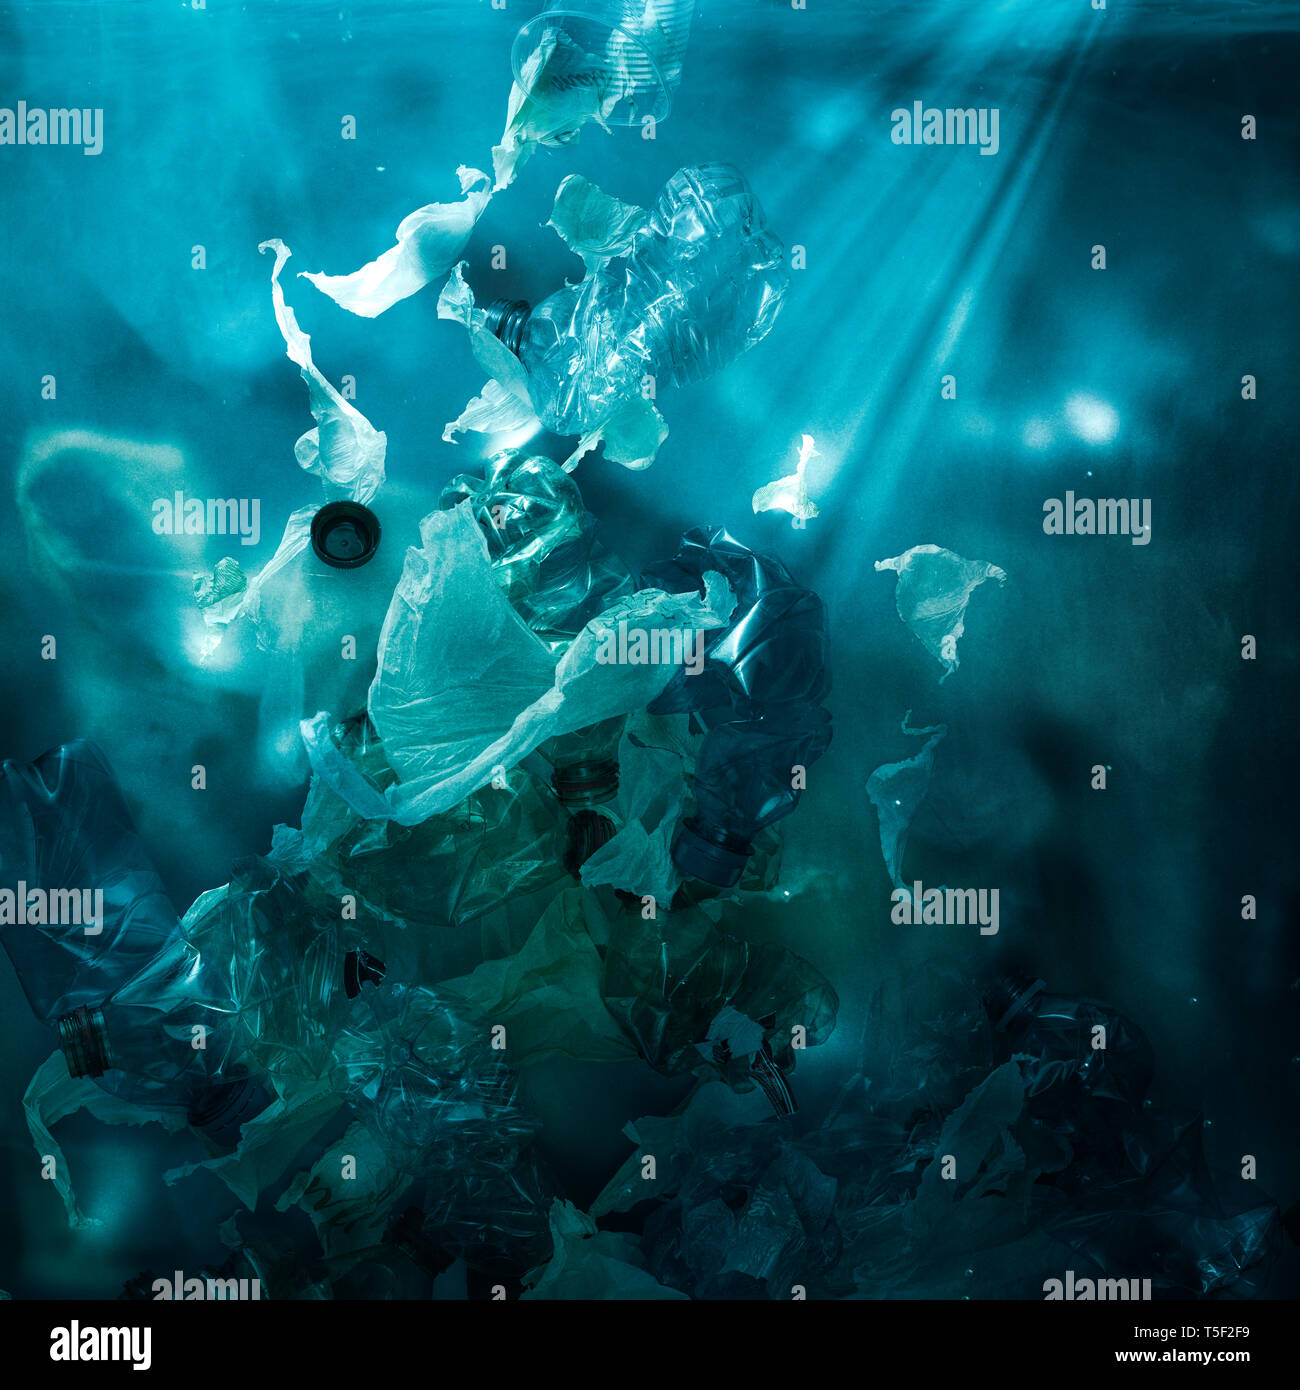 Toxic plastic waste floating underwater in the ocean, water pollution and environmental damage concept - Stock Image